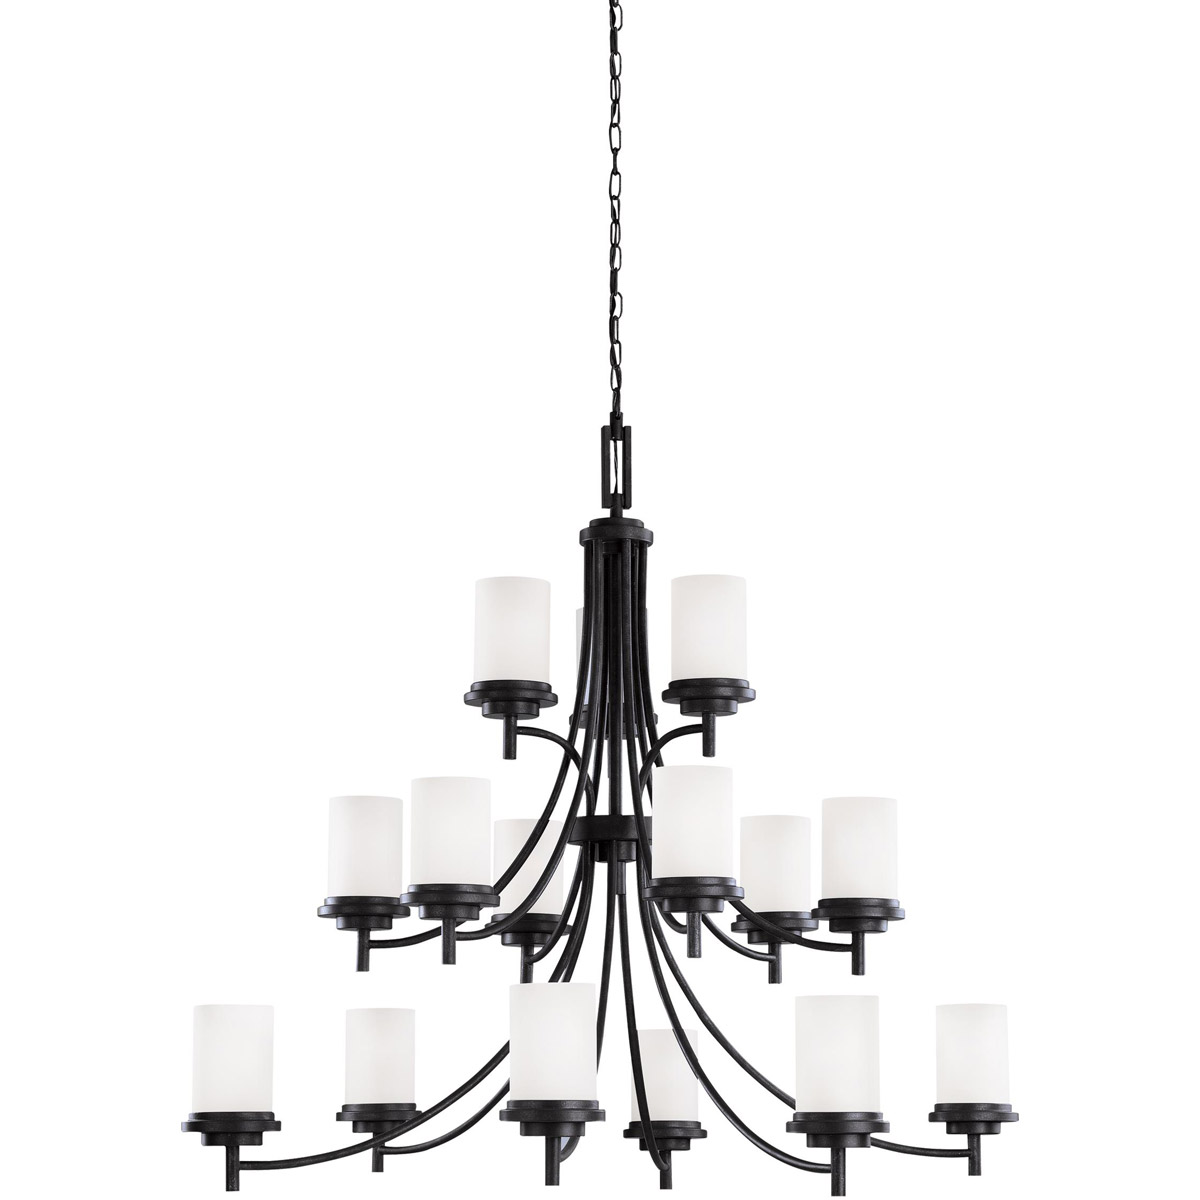 Sea Gull 31663BLE-839 Winnetka 15 Light 47 inch Blacksmith Chandelier Multi-Tier Ceiling Light in Satin Etched Glass, Fluorescent photo